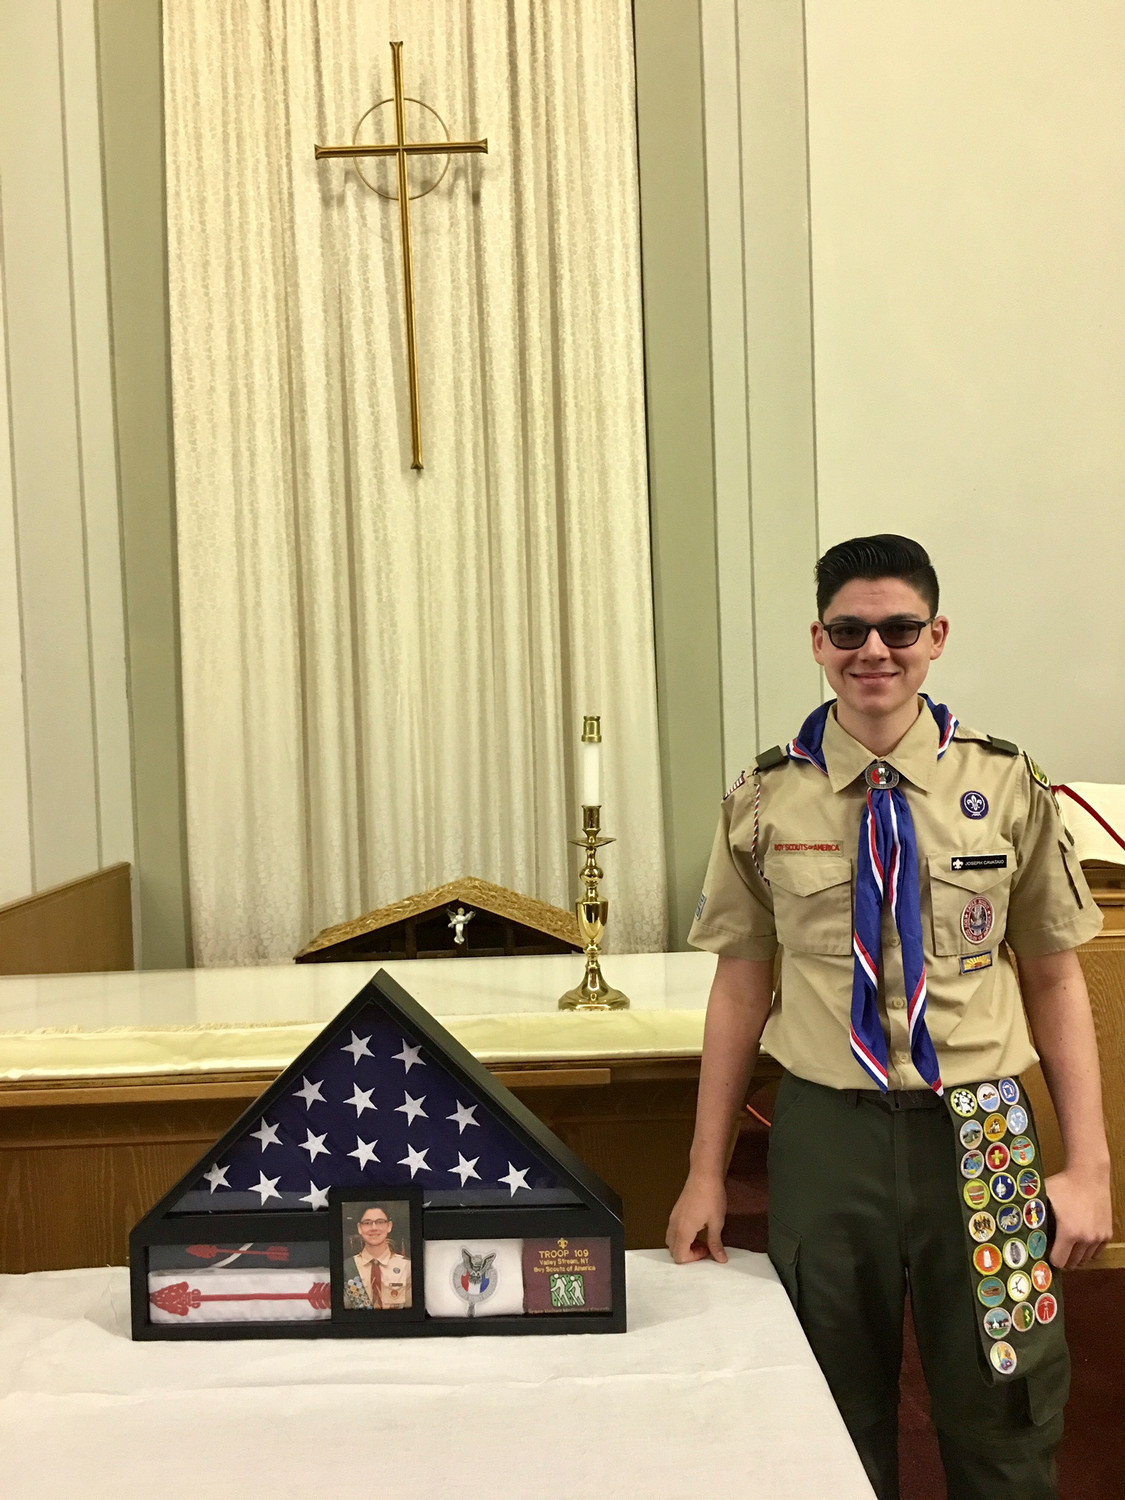 Joseph Cavataio, of Hewlett, earned the rank of Eagle Scout, 